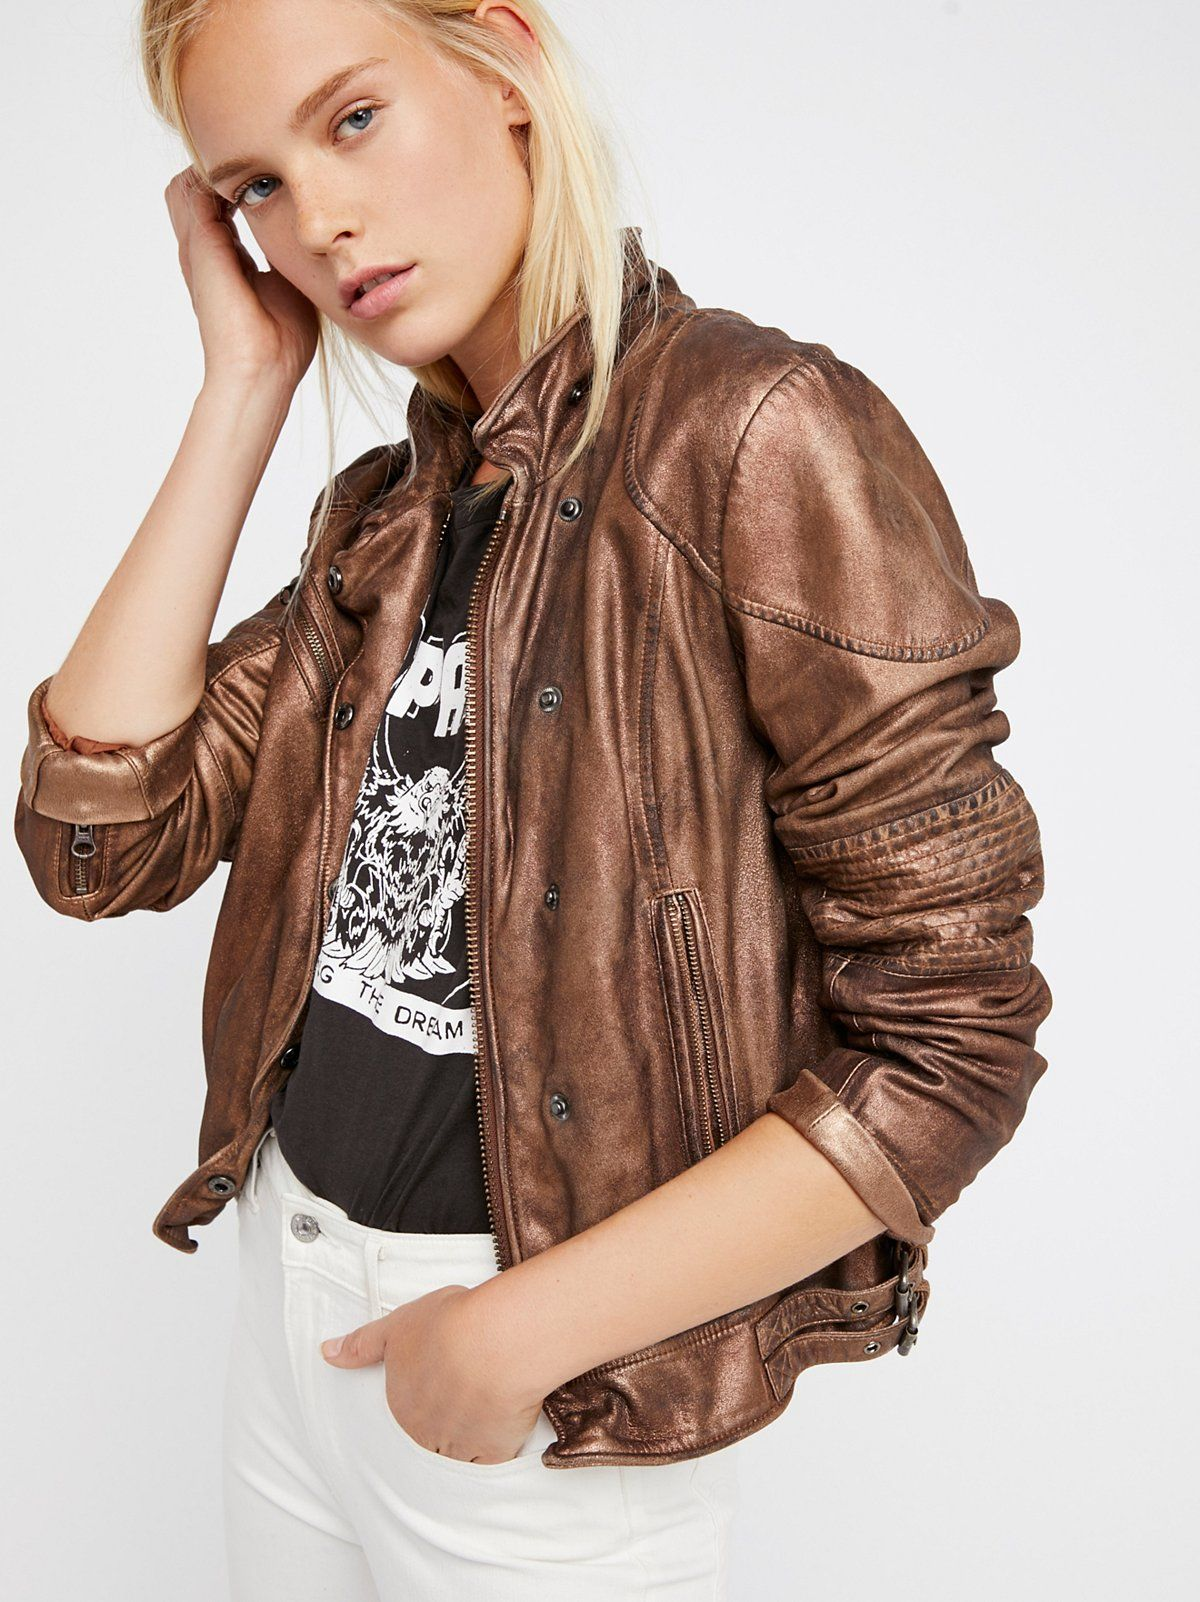 Fitted And Rugged Leather Jacket Leather Jacket Jackets Rugged Leather